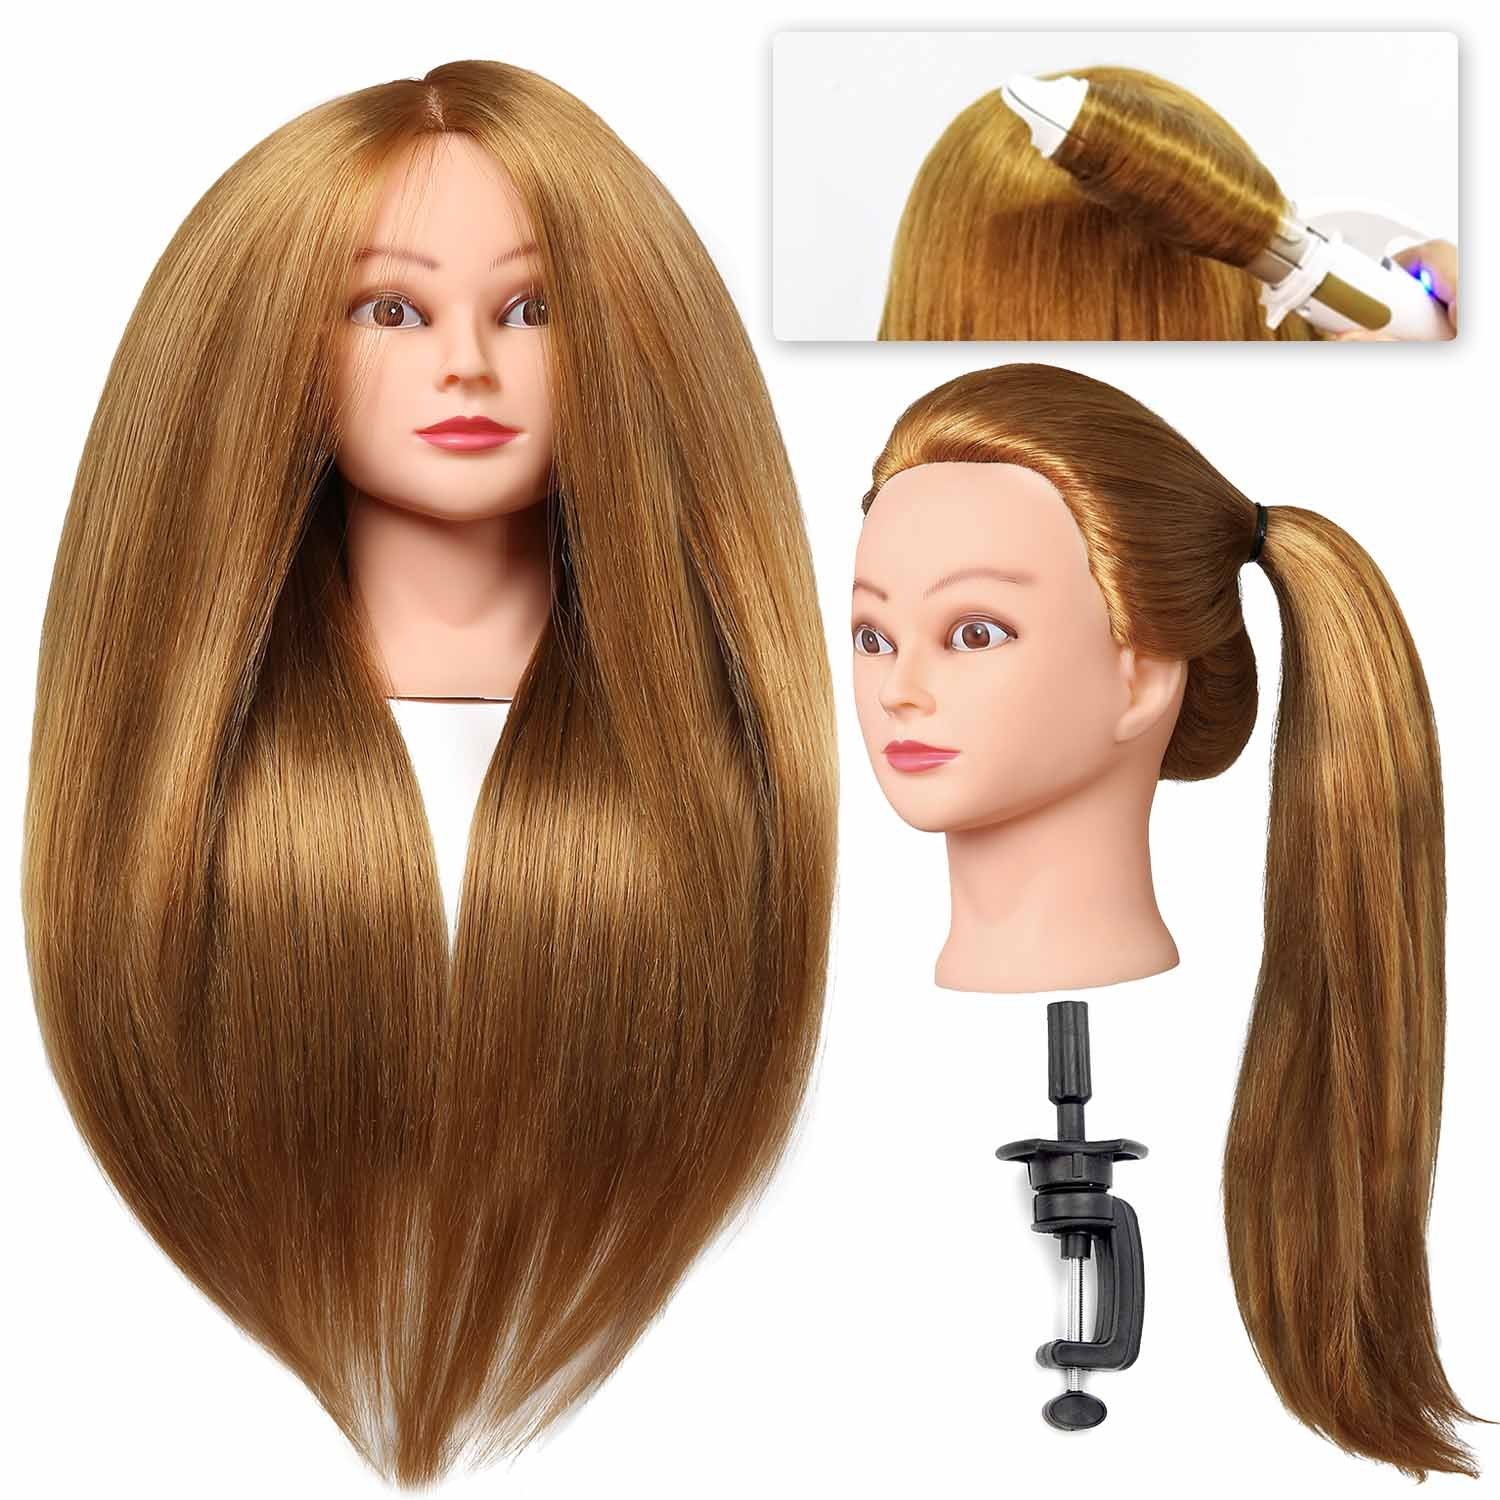 "SILKY #27 Mannequin Head with Human Hair 40% Blonde 28"" Professional Bride Hairdressing Cosmetology Doll Head Training Head Free Stand holder"